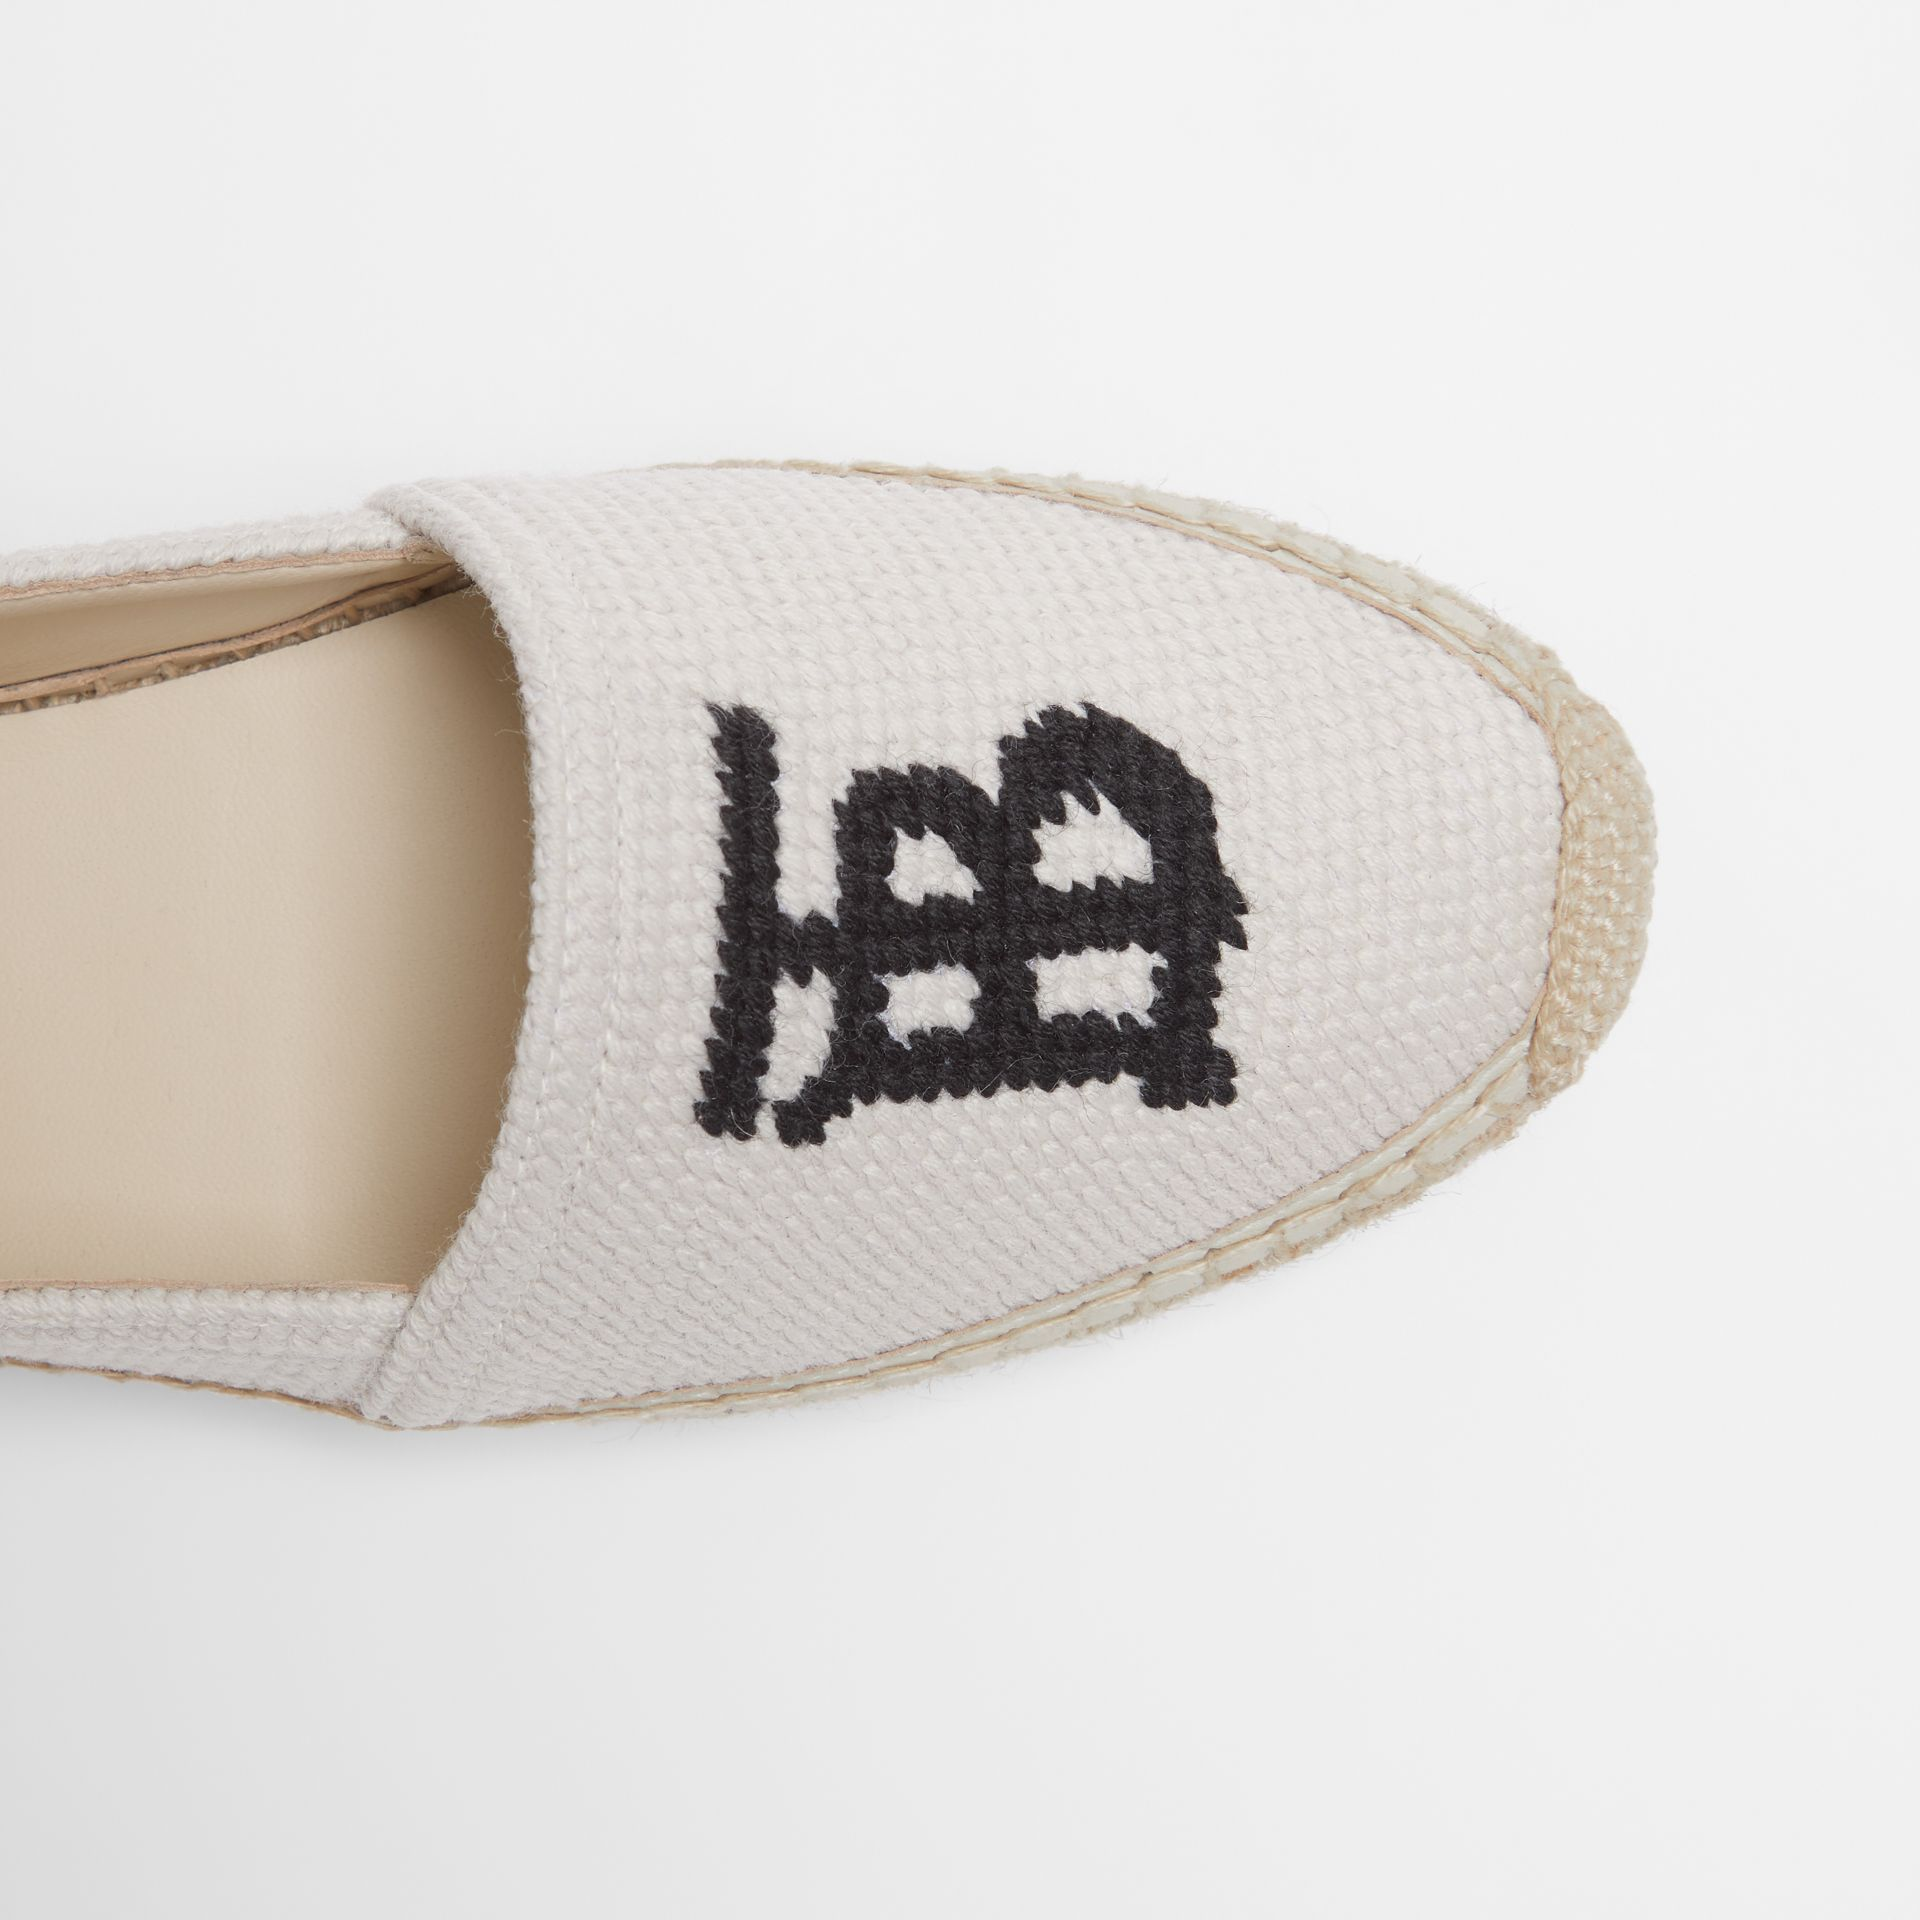 Monogram Motif Cotton and Leather Espadrilles in Ecru/black | Burberry United Kingdom - gallery image 1